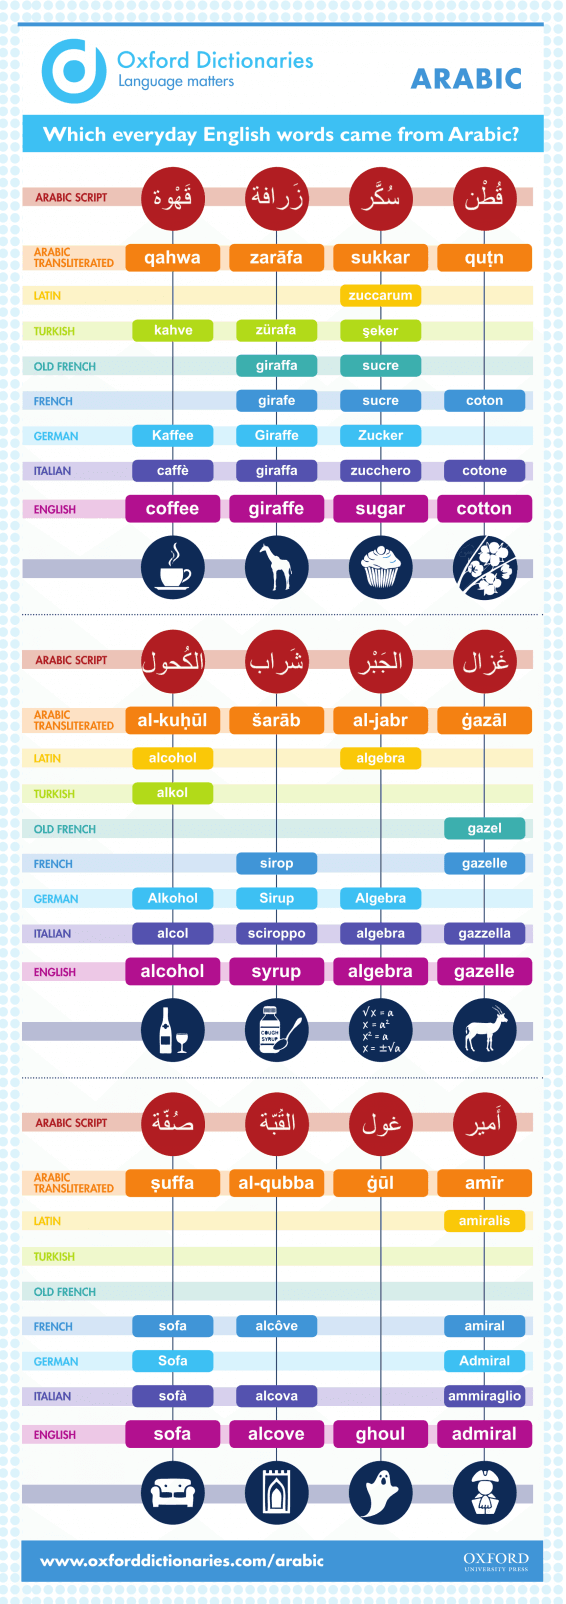 inlingua-edinburgh-infographic-Which-English-words-came-from-Arabic-566x1604